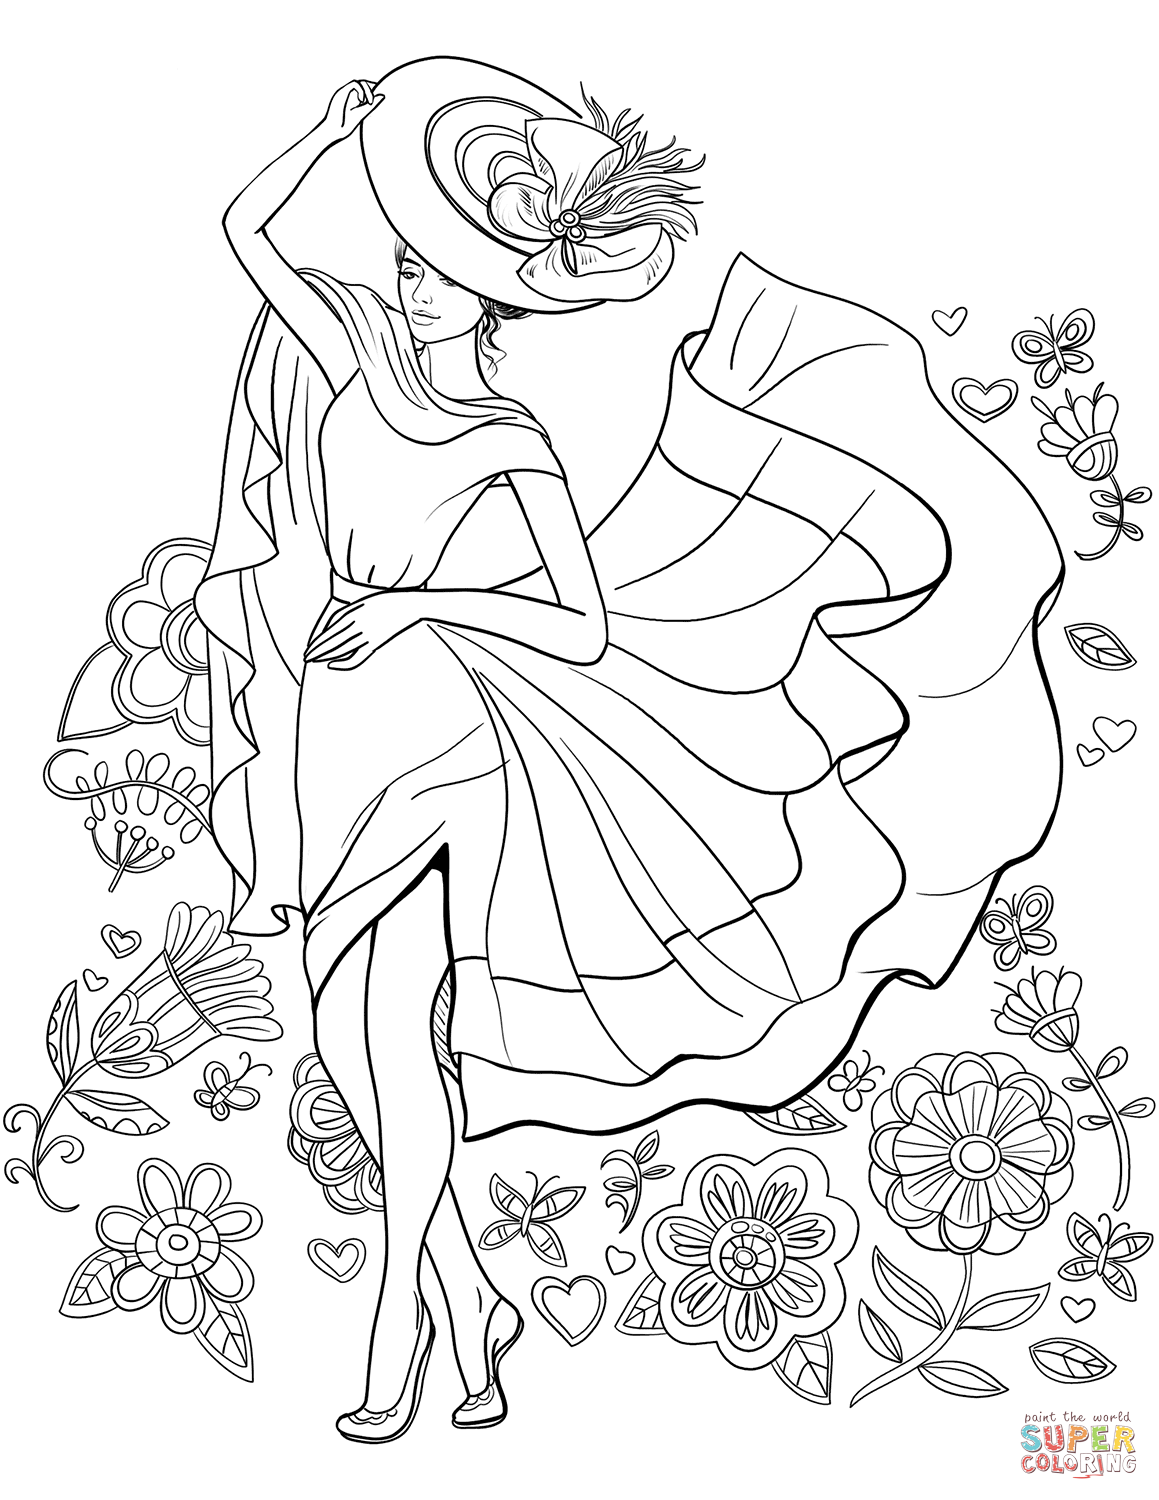 Lady Pin Up Coloring Page Free Printable Coloring Pages